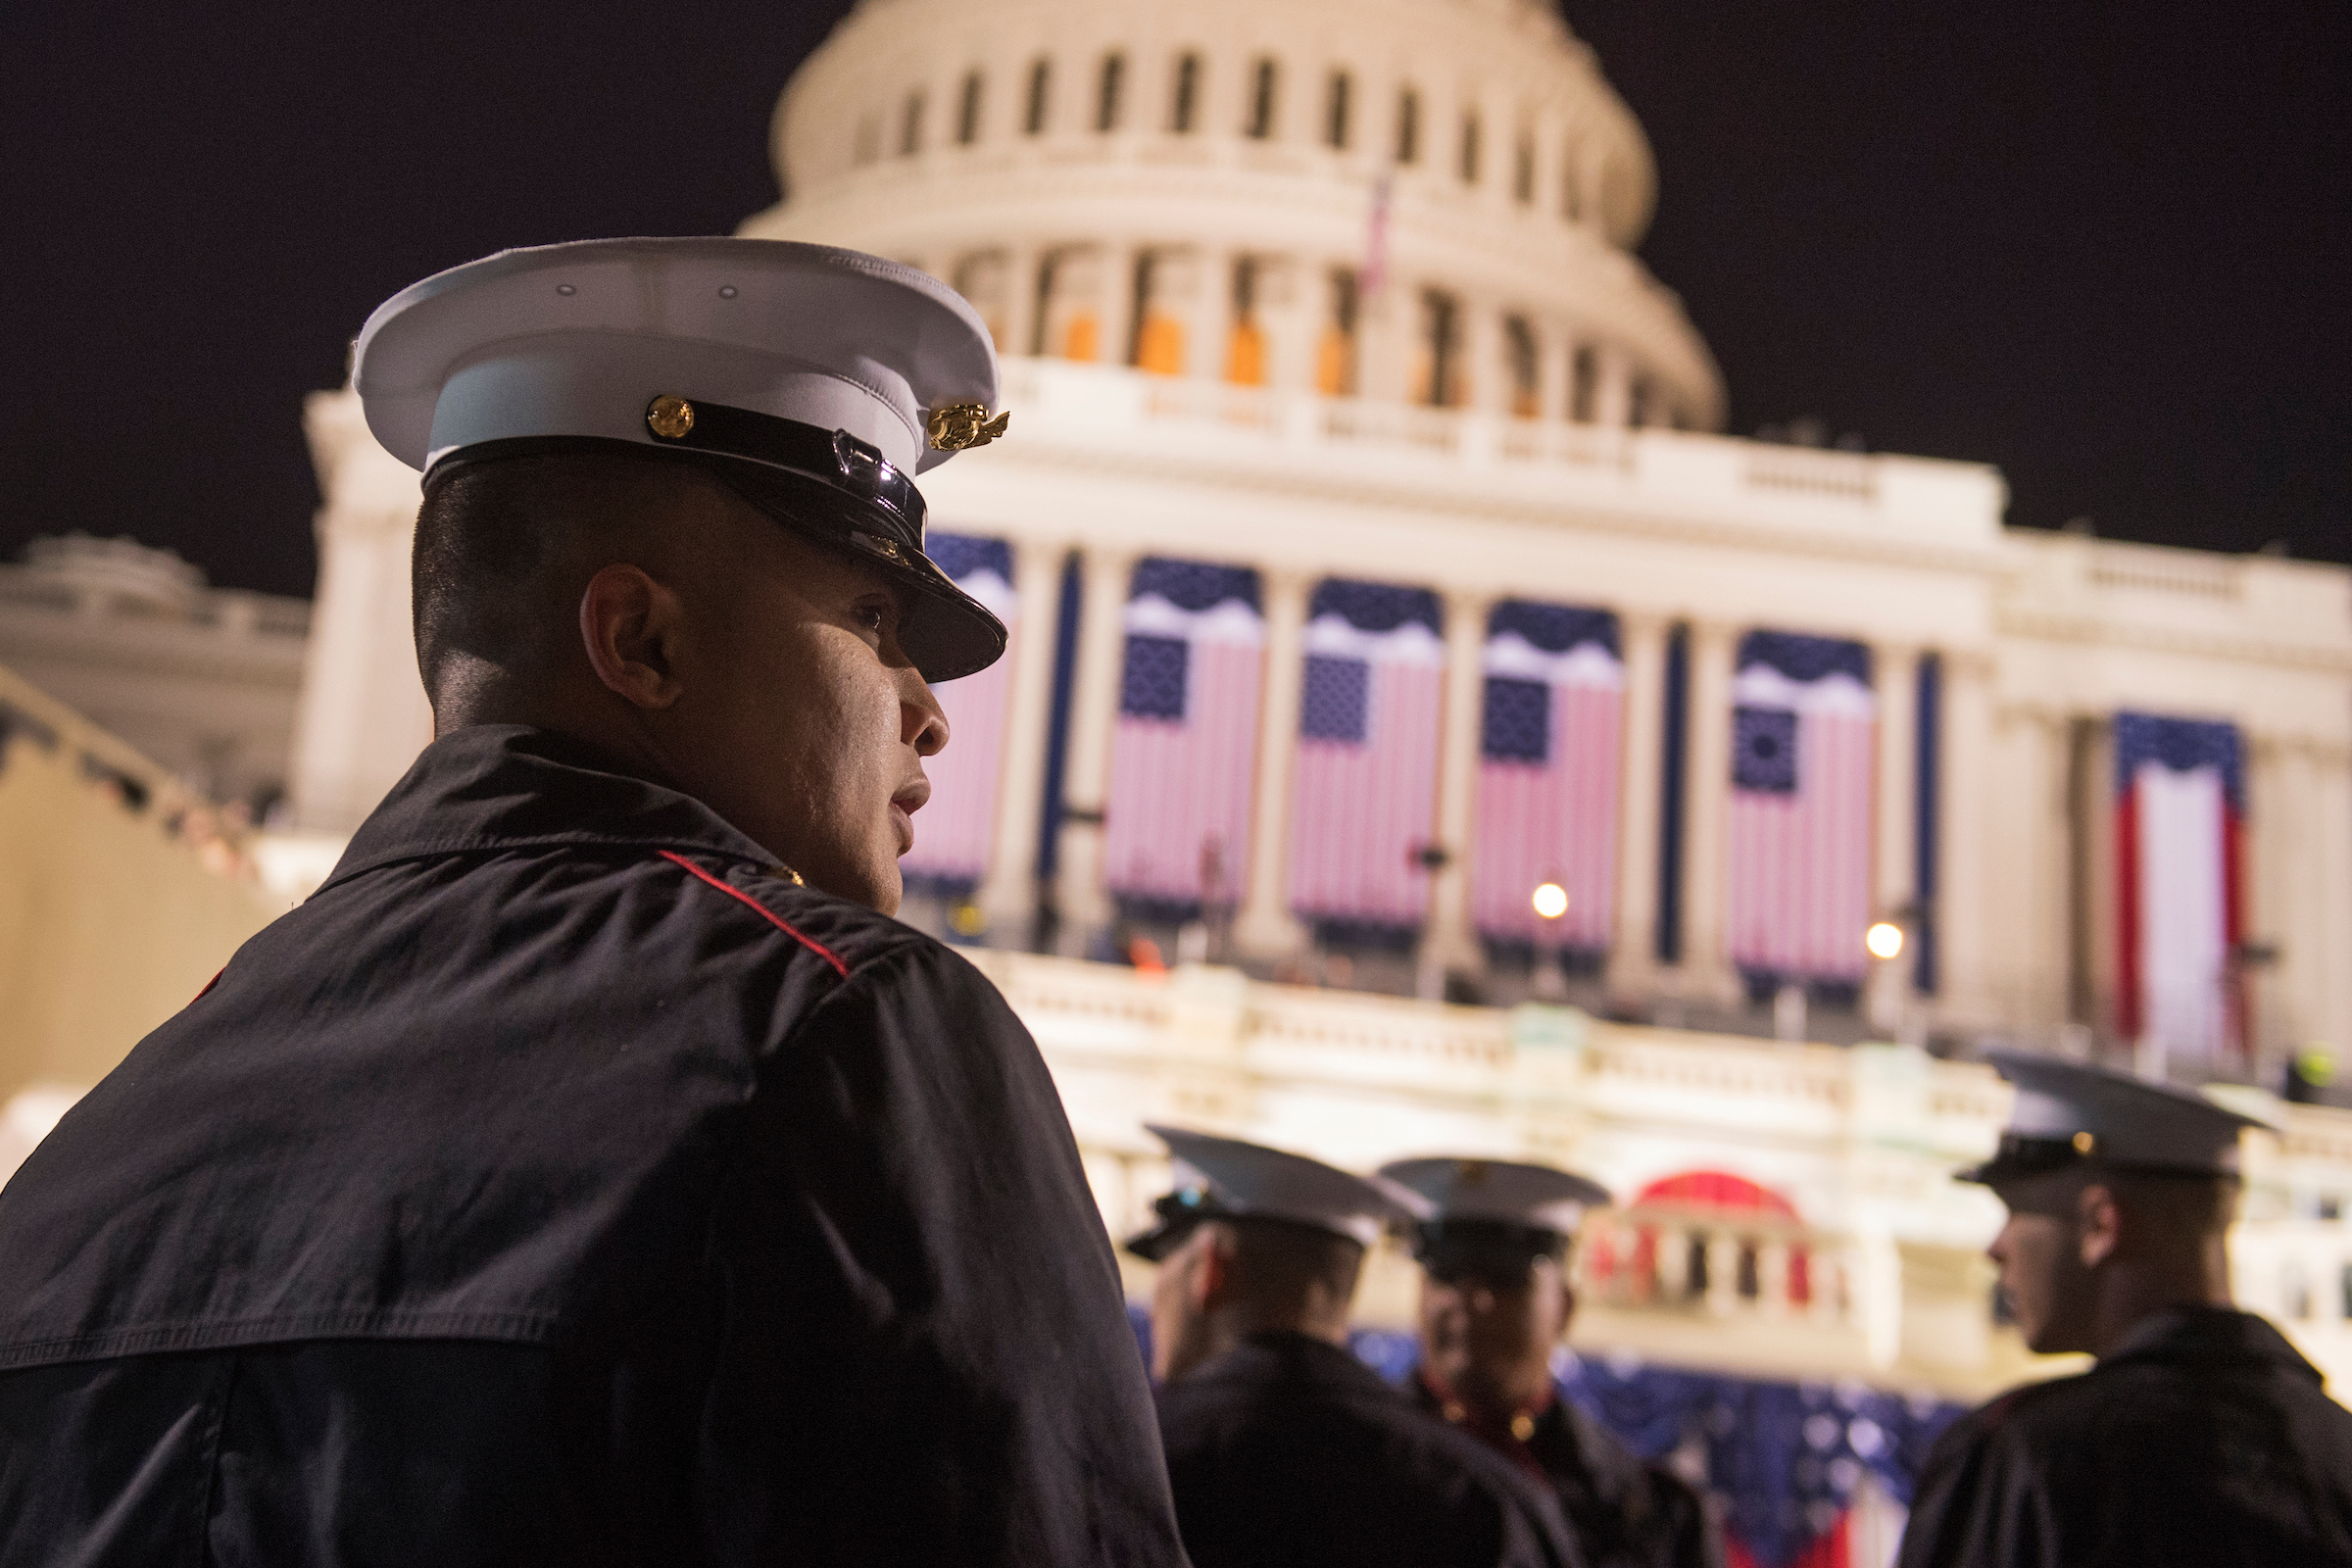 UNITED STATES - JANUARY 20: Members of Marine Barracks Washington gather on the West Front of the Capitol on Inauguration Day before Donald J. Trump was sworn in as the 45th President of the United States, January 20, 2017. (Photo By Tom Williams/CQ Roll Call)